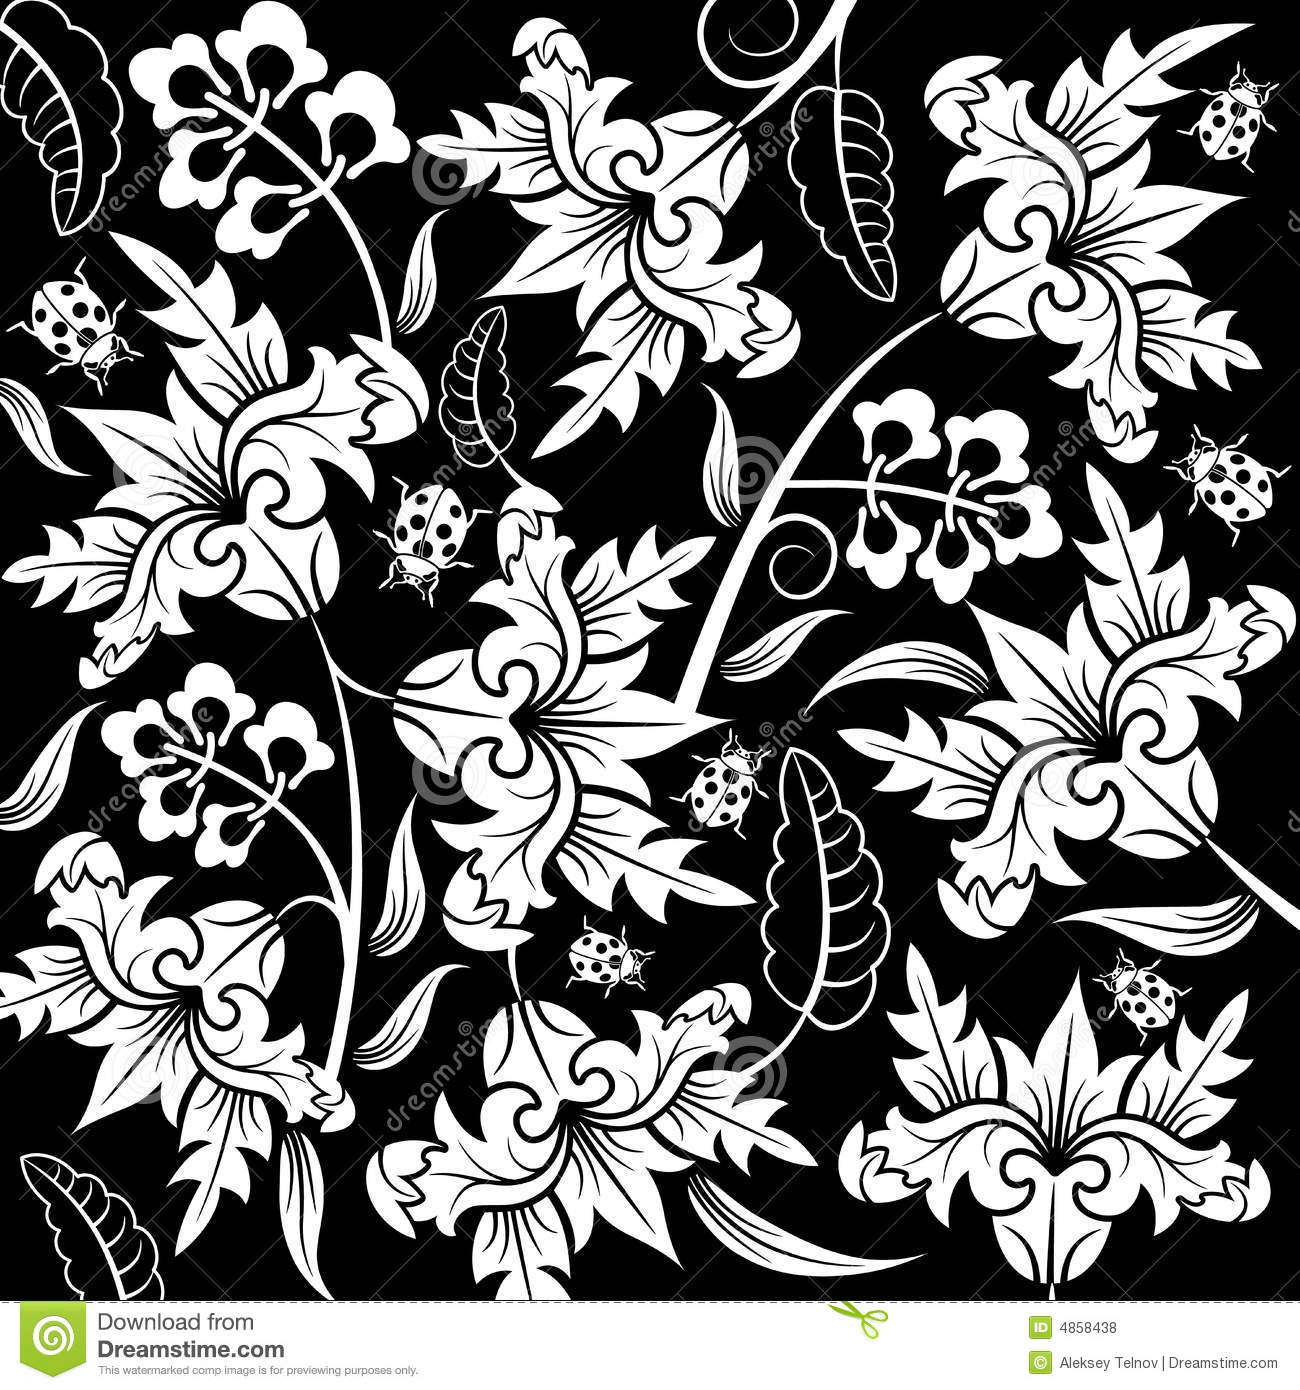 Wallpaper Black And White Damask Abstract Flower Pattern Royalty Free Stock Photos Image